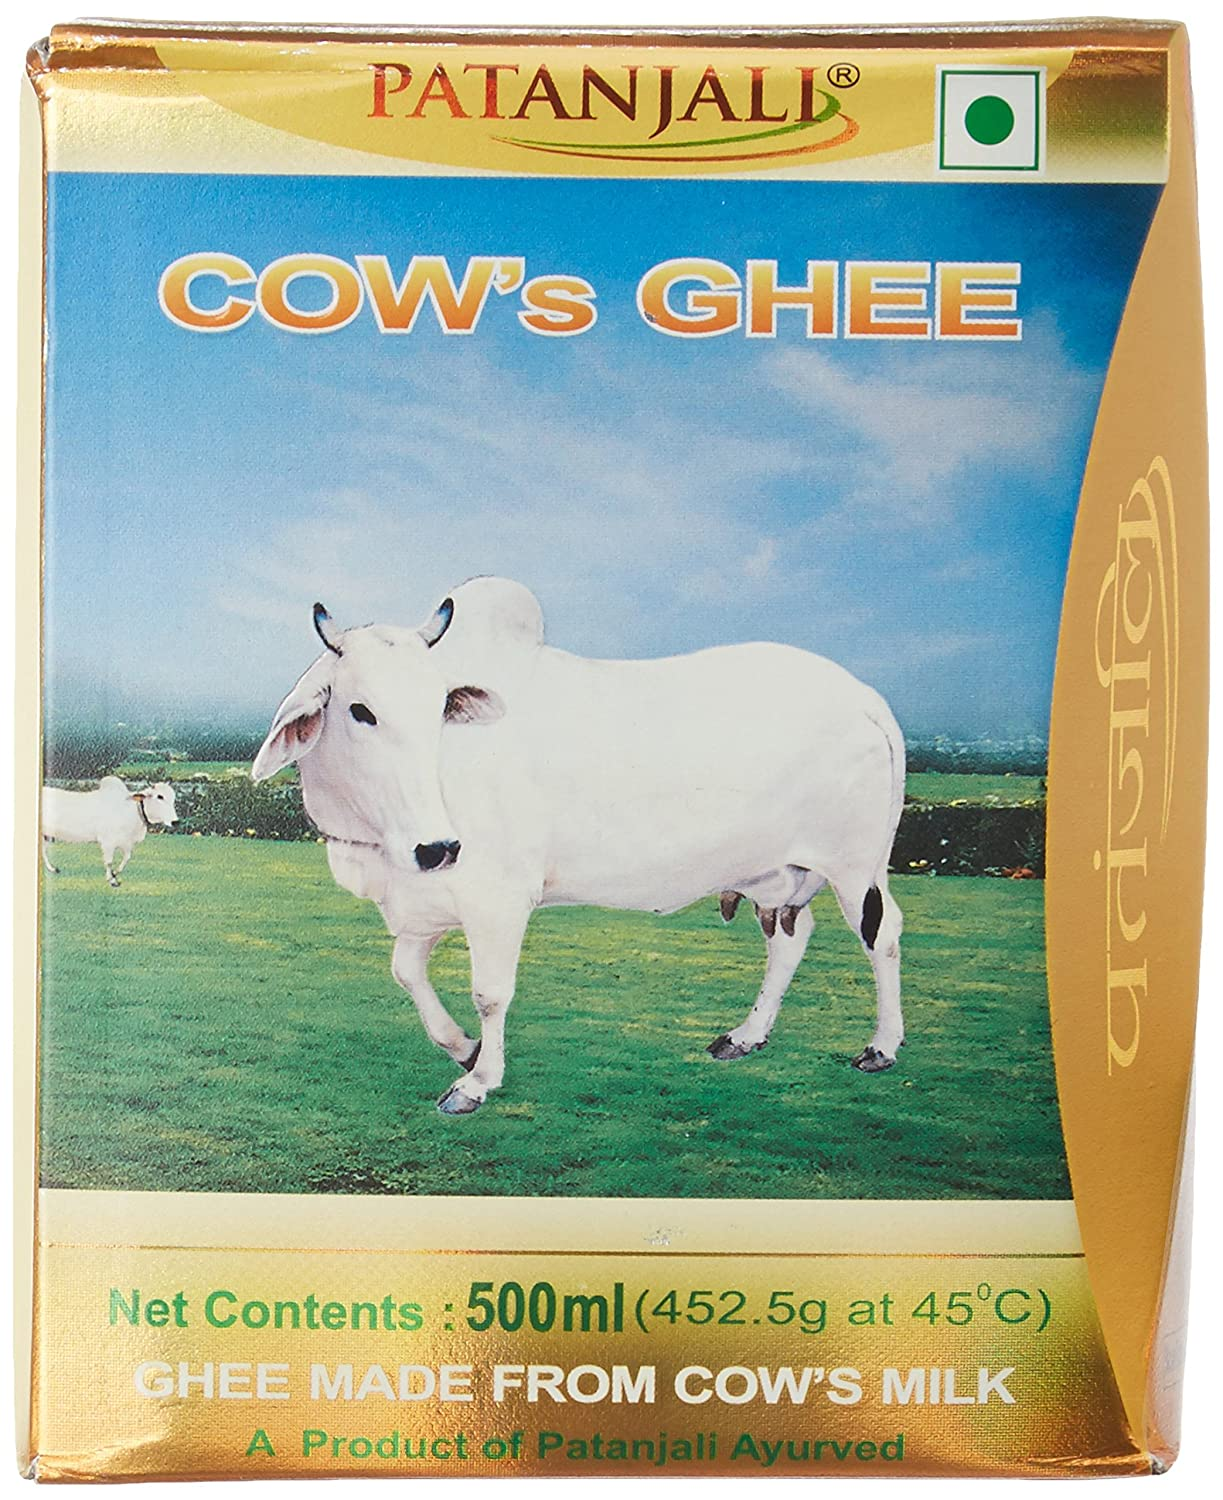 Patanjali Cows Ghee, 500ml By Amazon @ Rs.235